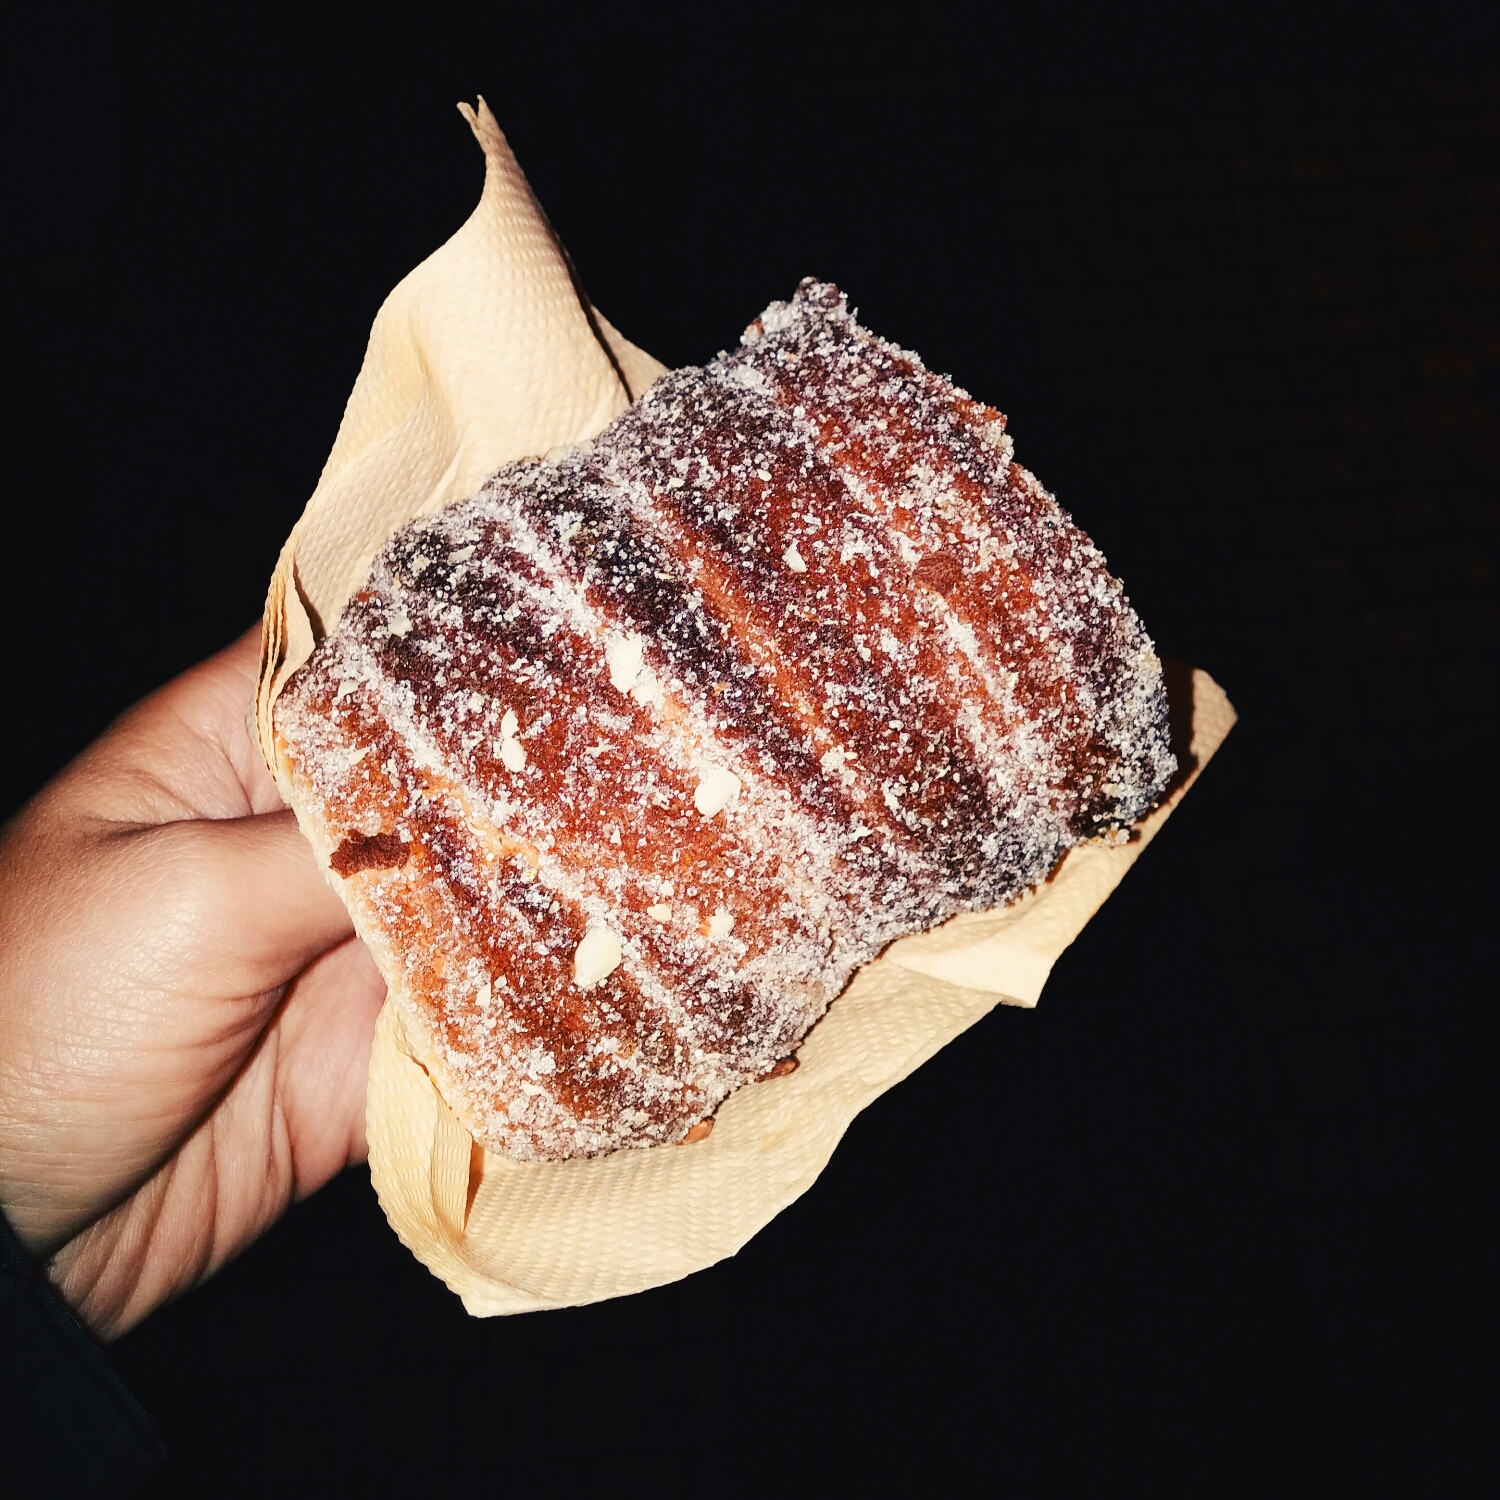 {Yum! You can also see that it's a little burnt.}